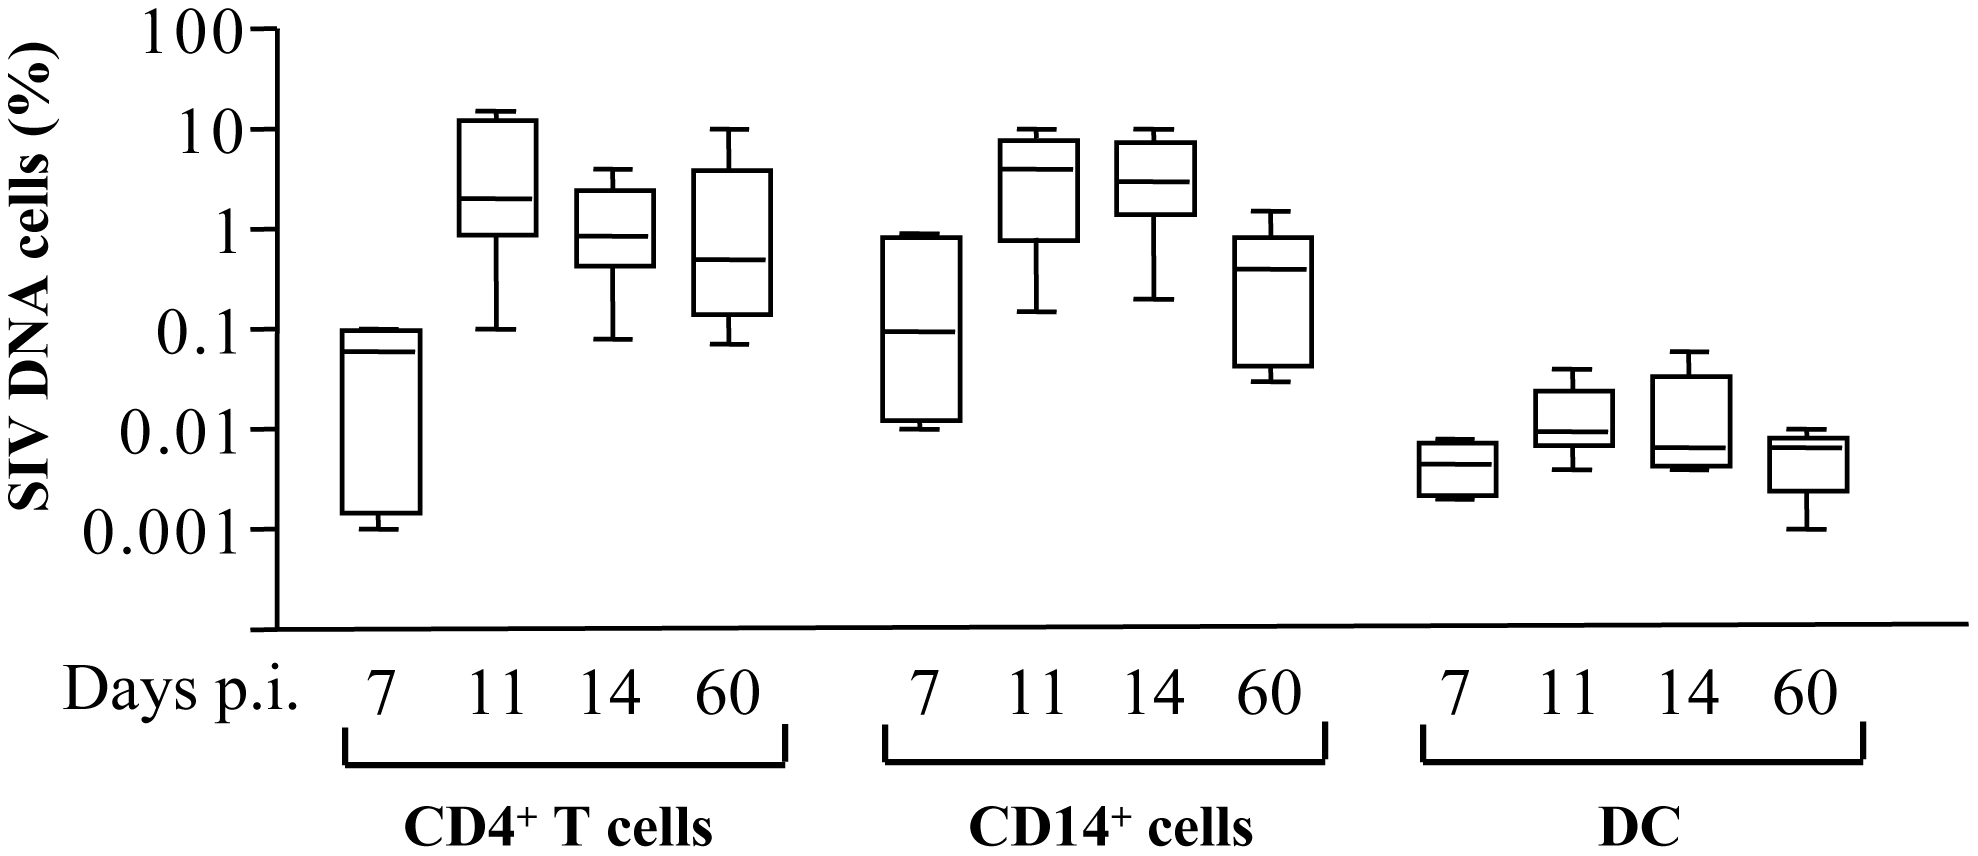 Frequency of SIV-DNA<sup>+</sup> cells in SIV-infected macaques.